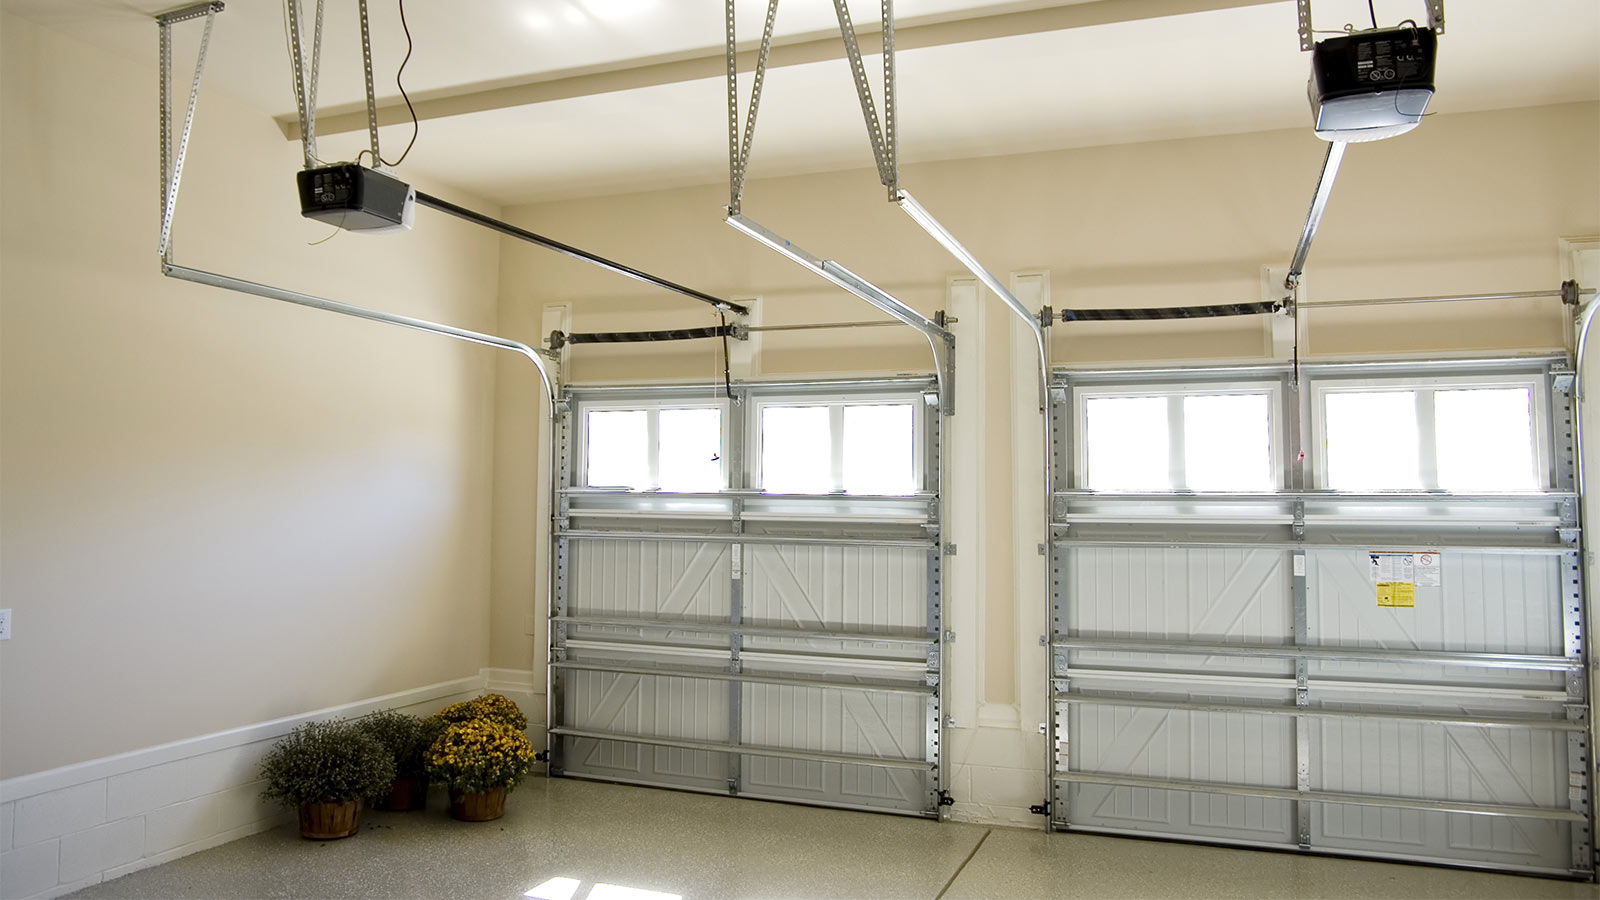 Sectional Garage Doors from Roller Shutters Bedfordshire suppliers.